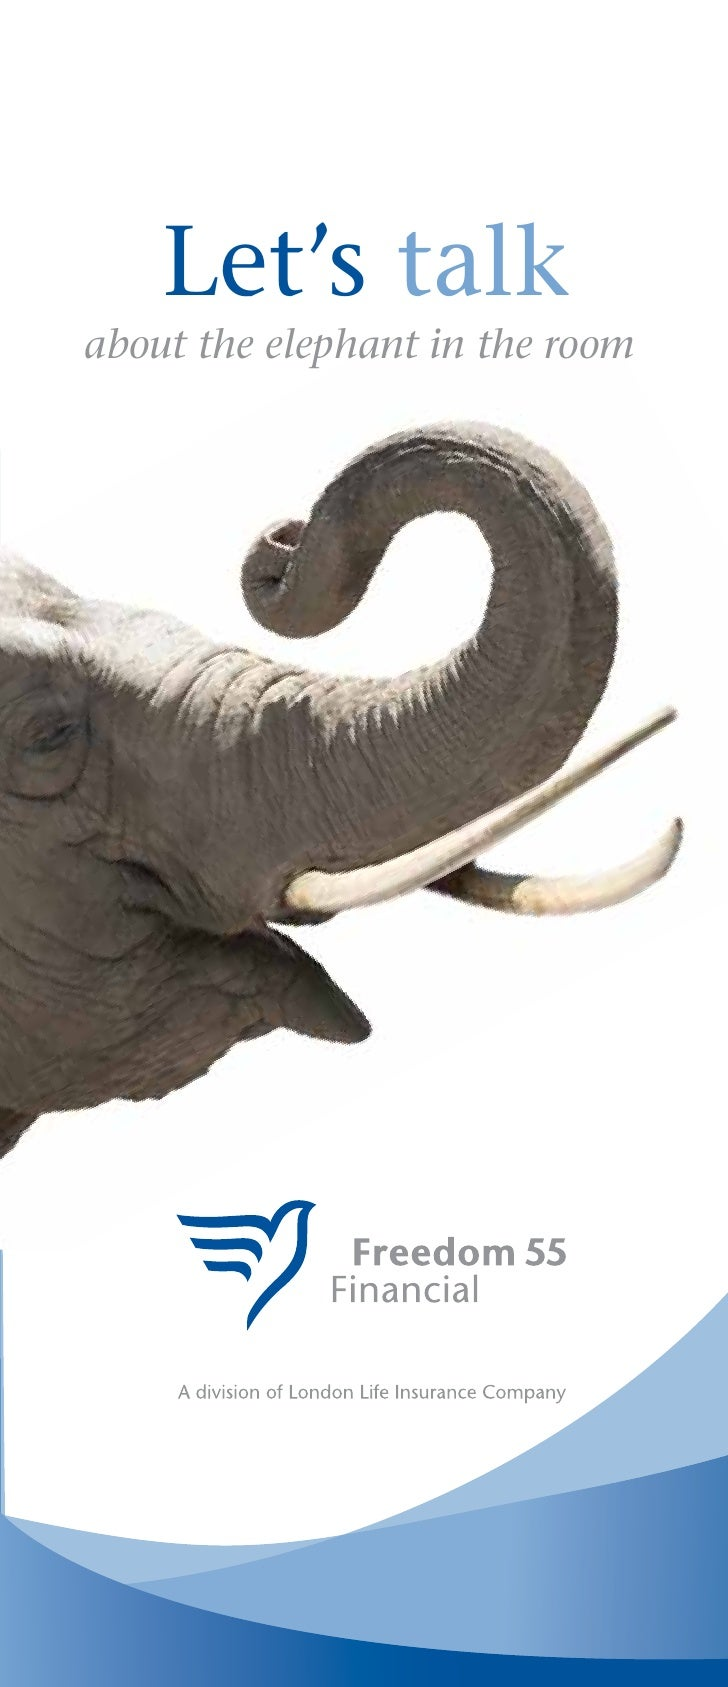 Let's talk about the elephant in the room